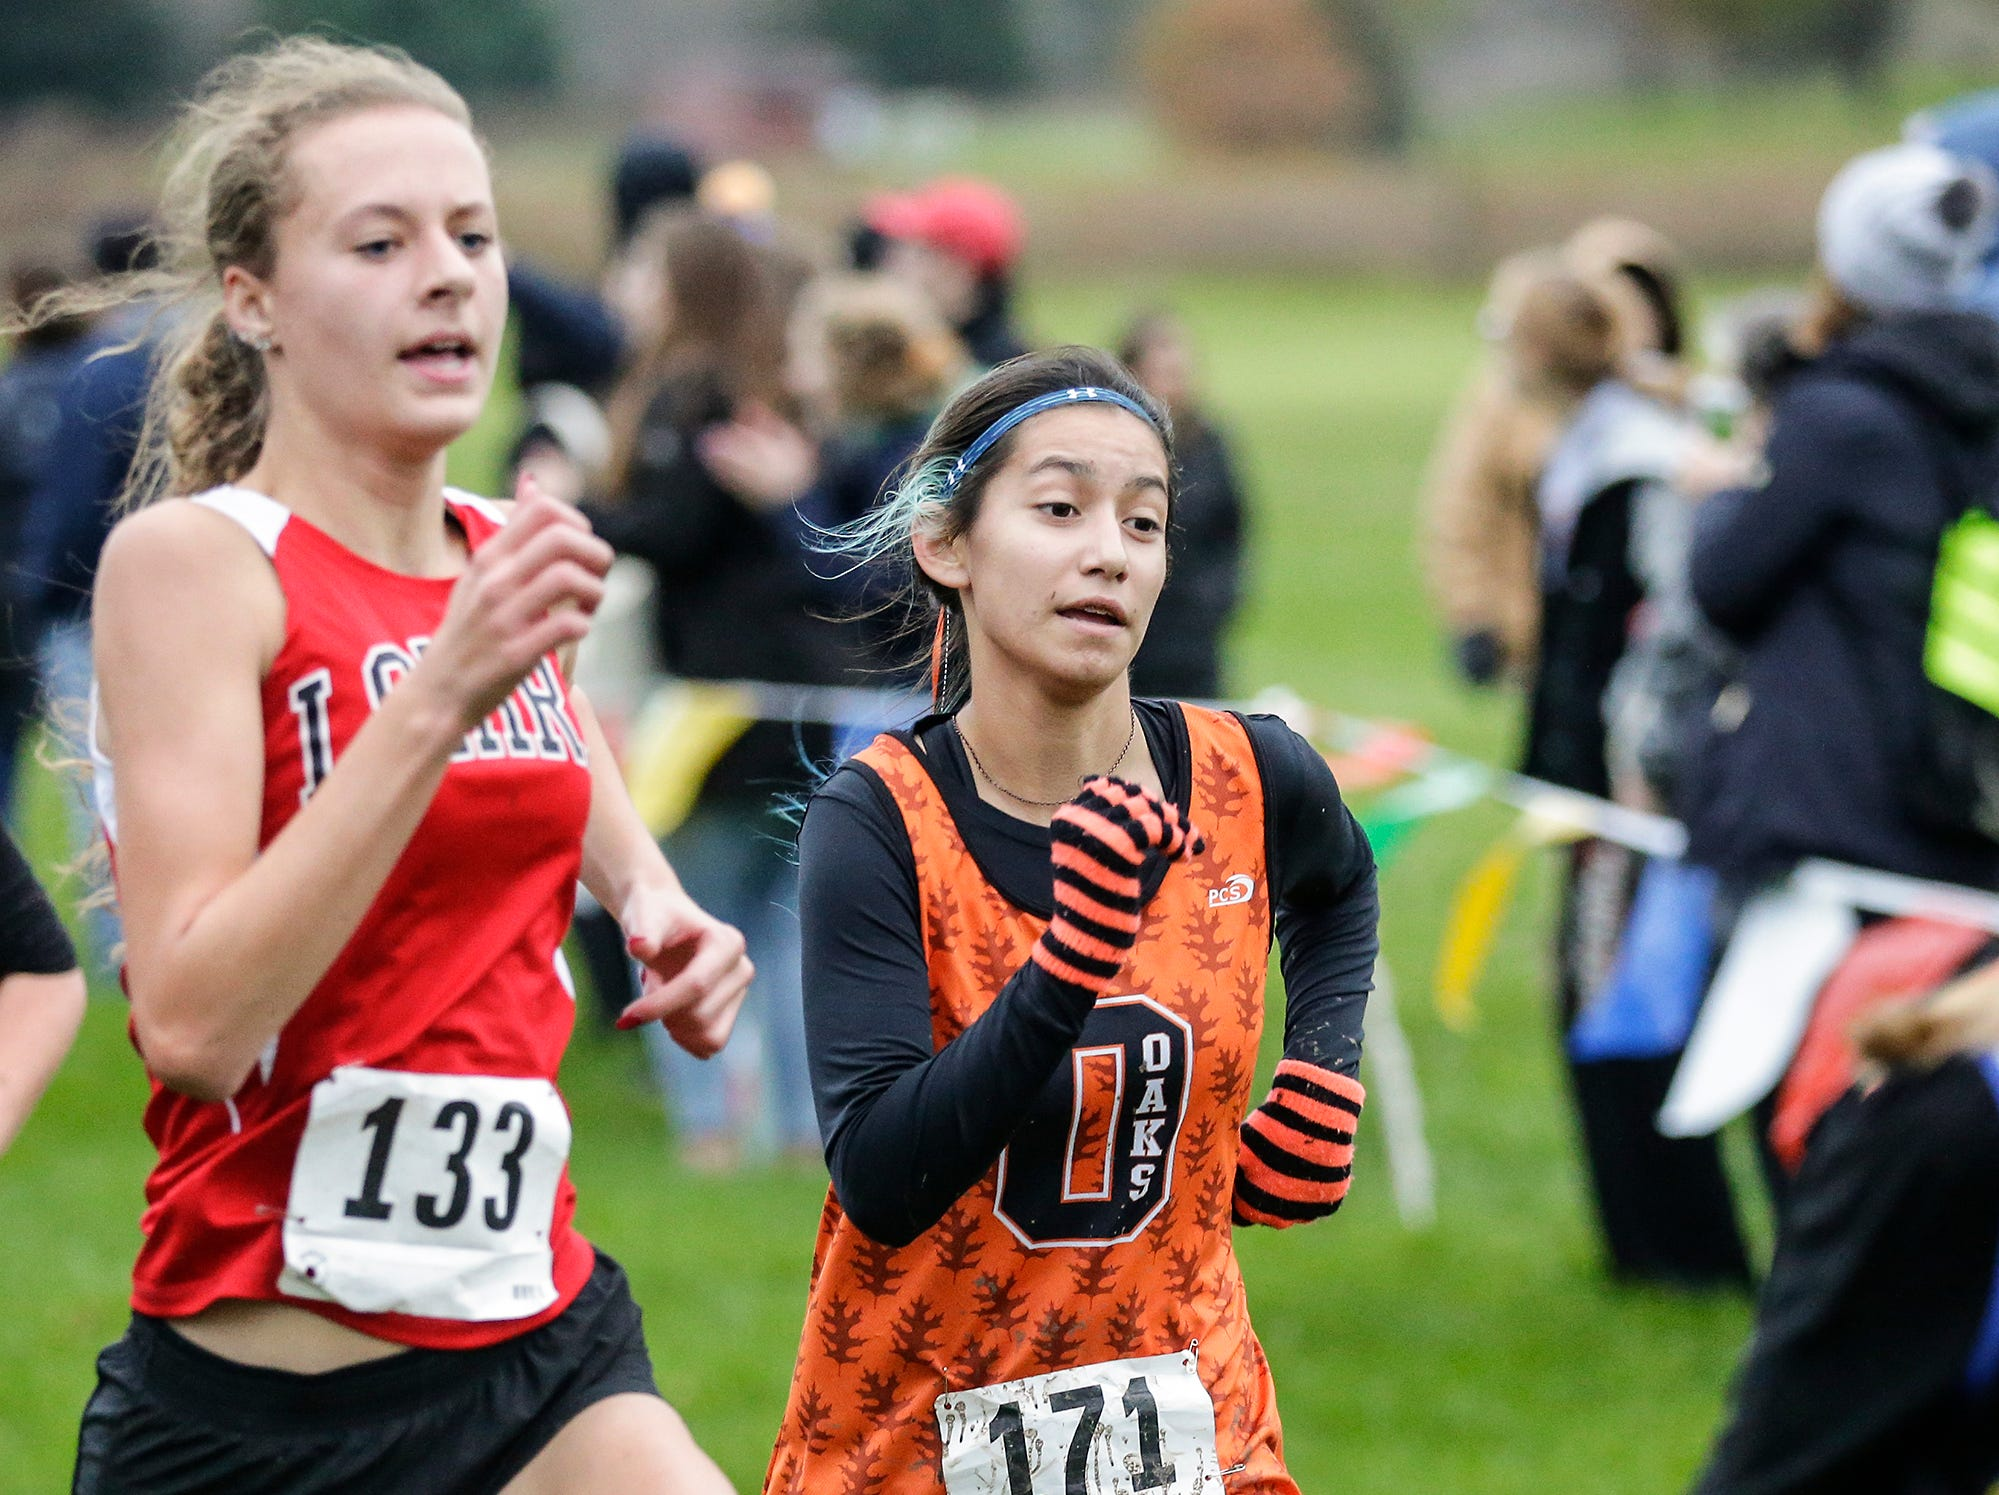 North Fond du Lac High School's Emma Maravilla runs in the WIAA Division two Mayville sectional cross country meet at the Mayville golf course Friday, October 19, 2018. Doug Raflik/USA TODAY NETWORK-Wisconsin